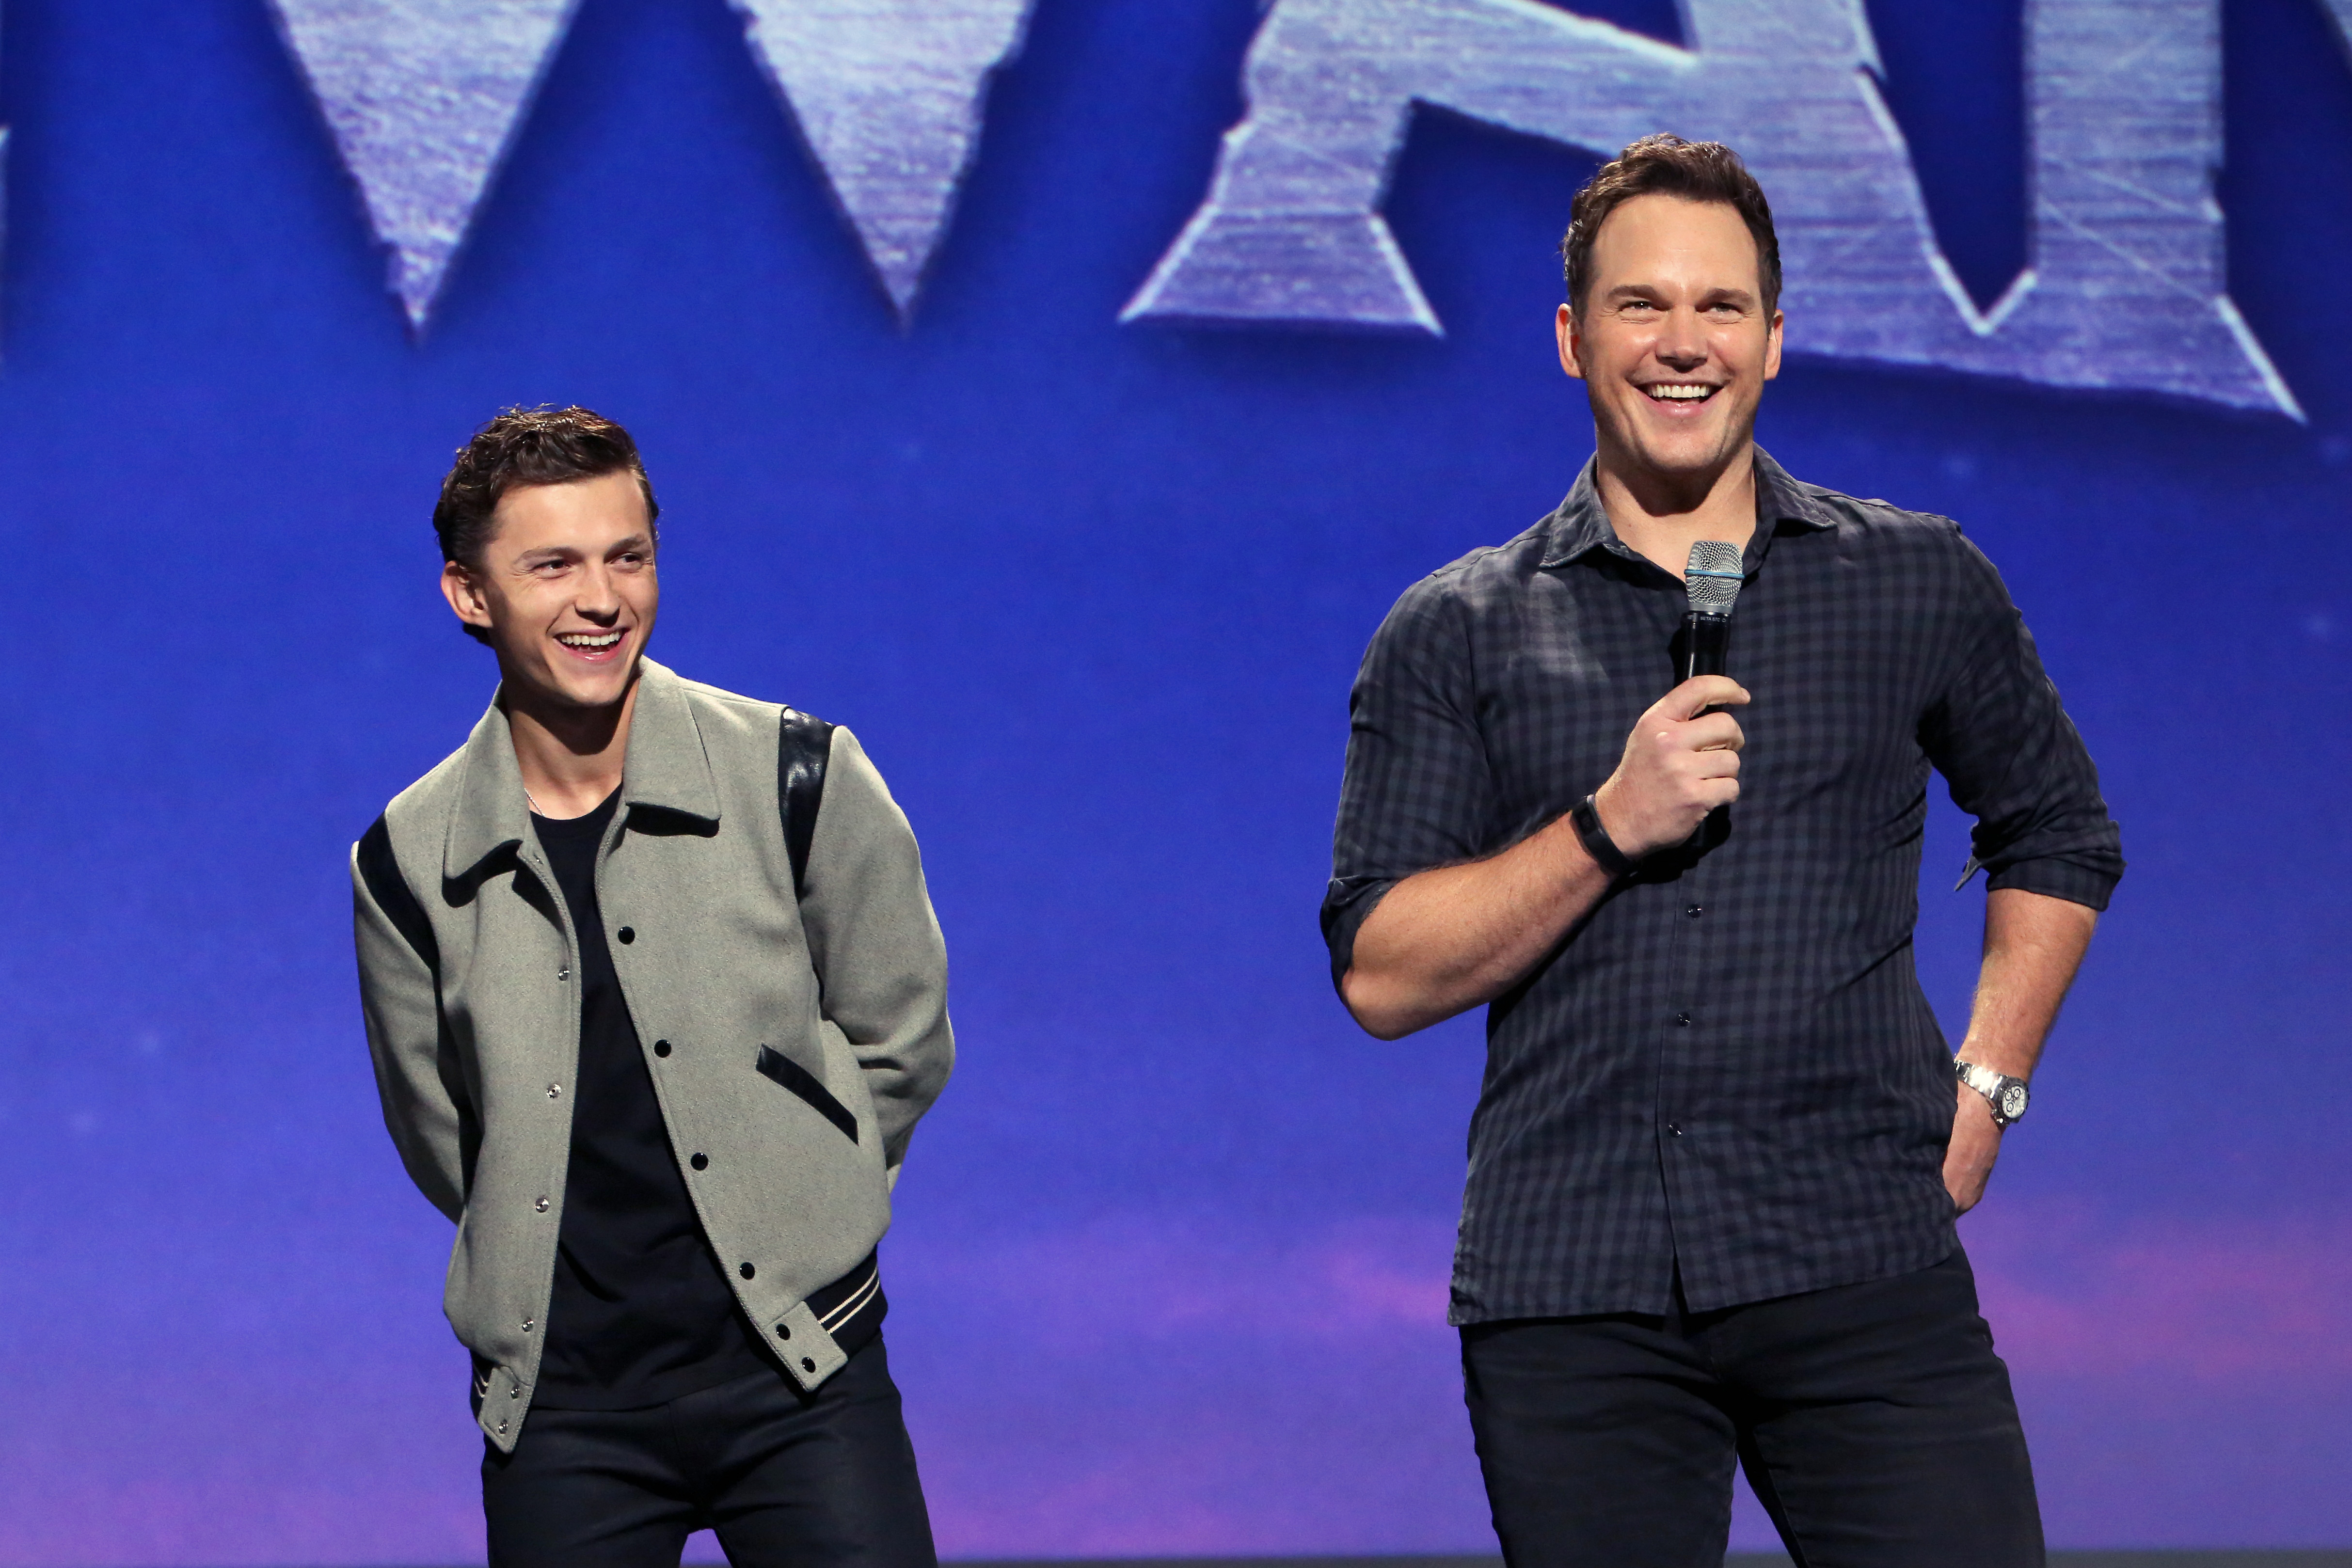 ANAHEIM, CALIFORNIA - AUGUST 24: (L-R) Tom Holland and Chris Pratt of 'Onward' took part today in the Walt Disney Studios presentation at Disney's D23 EXPO 2019 in Anaheim, Calif. 'Onward' will be released in U.S. theaters on March 6, 2020. (Photo by Jesse Grant/Getty Images for Disney)